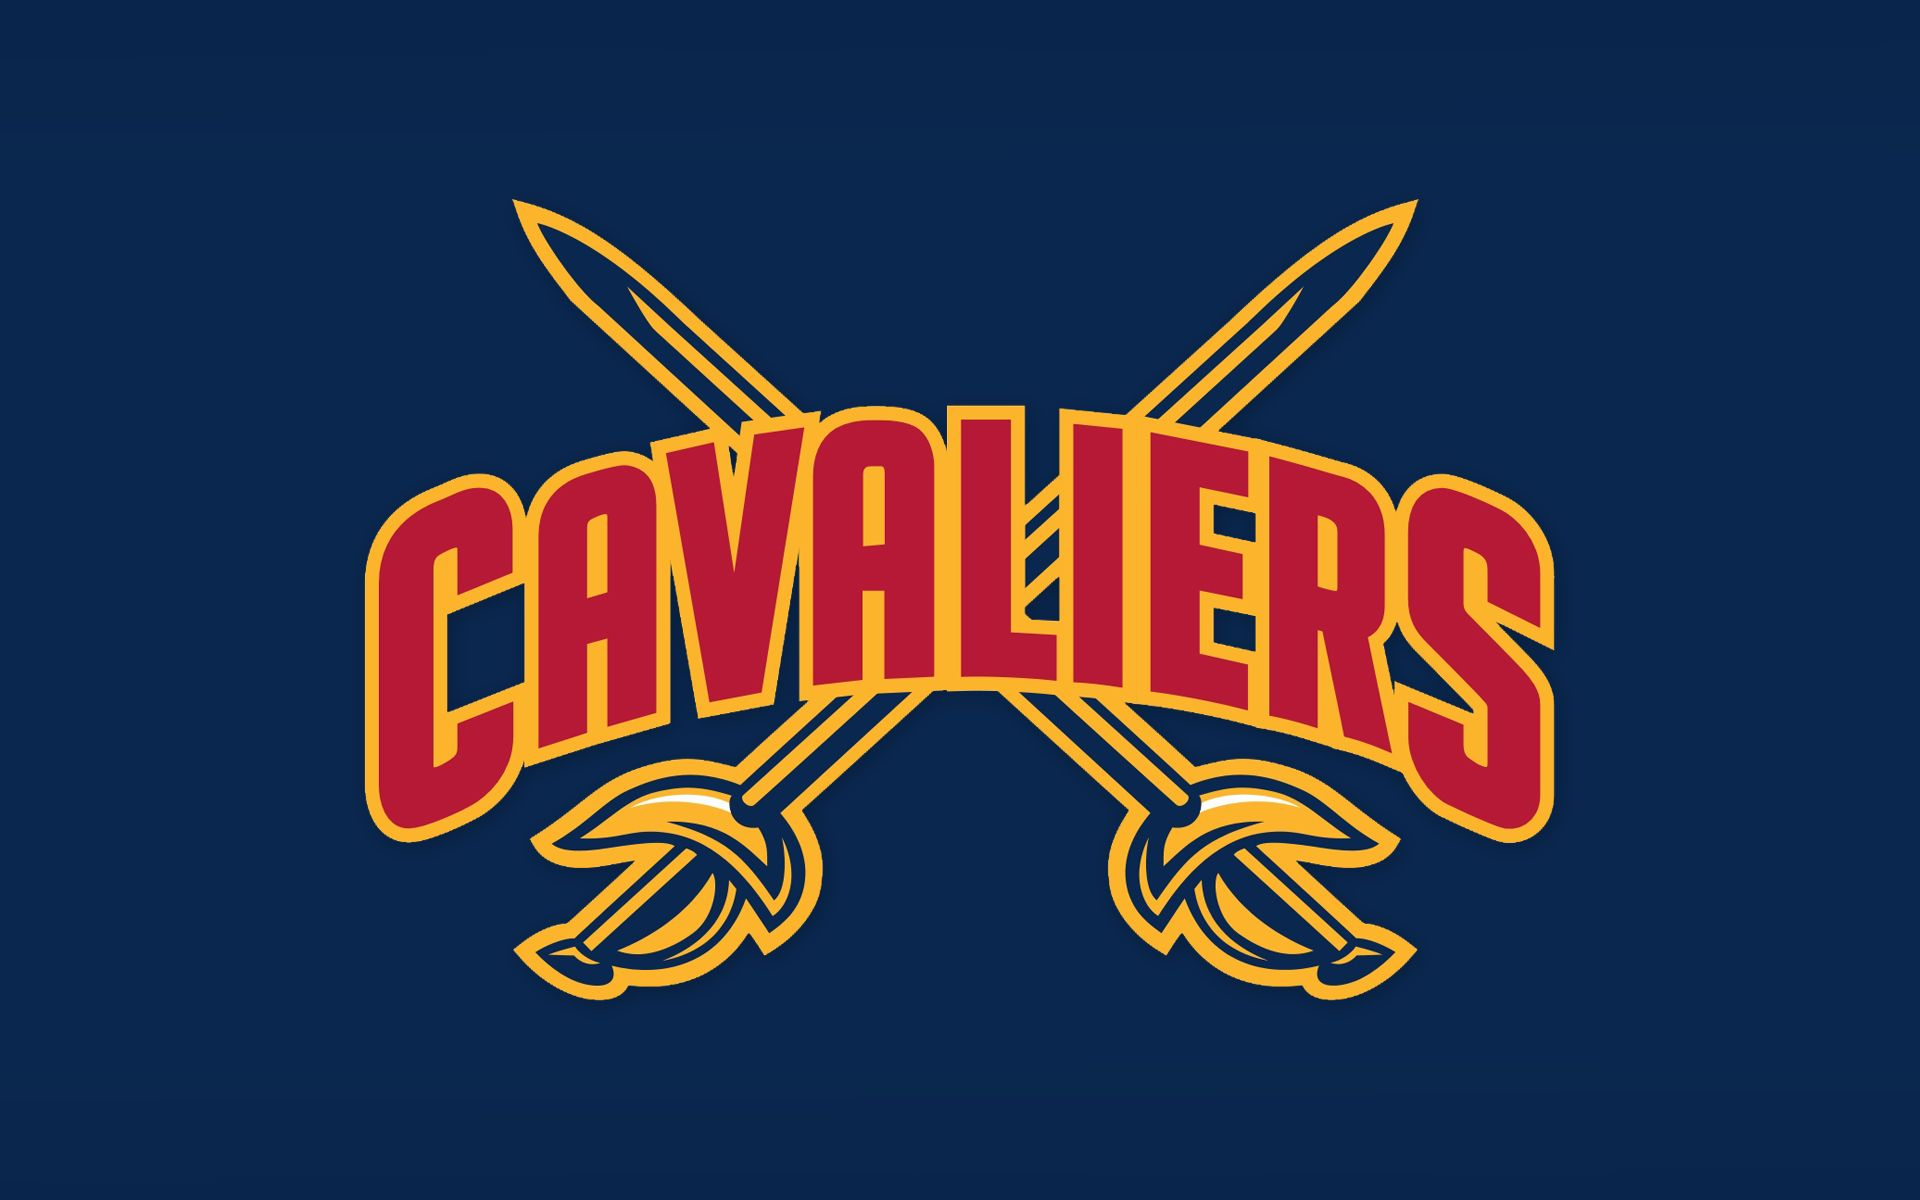 images of the cleveland cavaliers logos | Cleveland ...